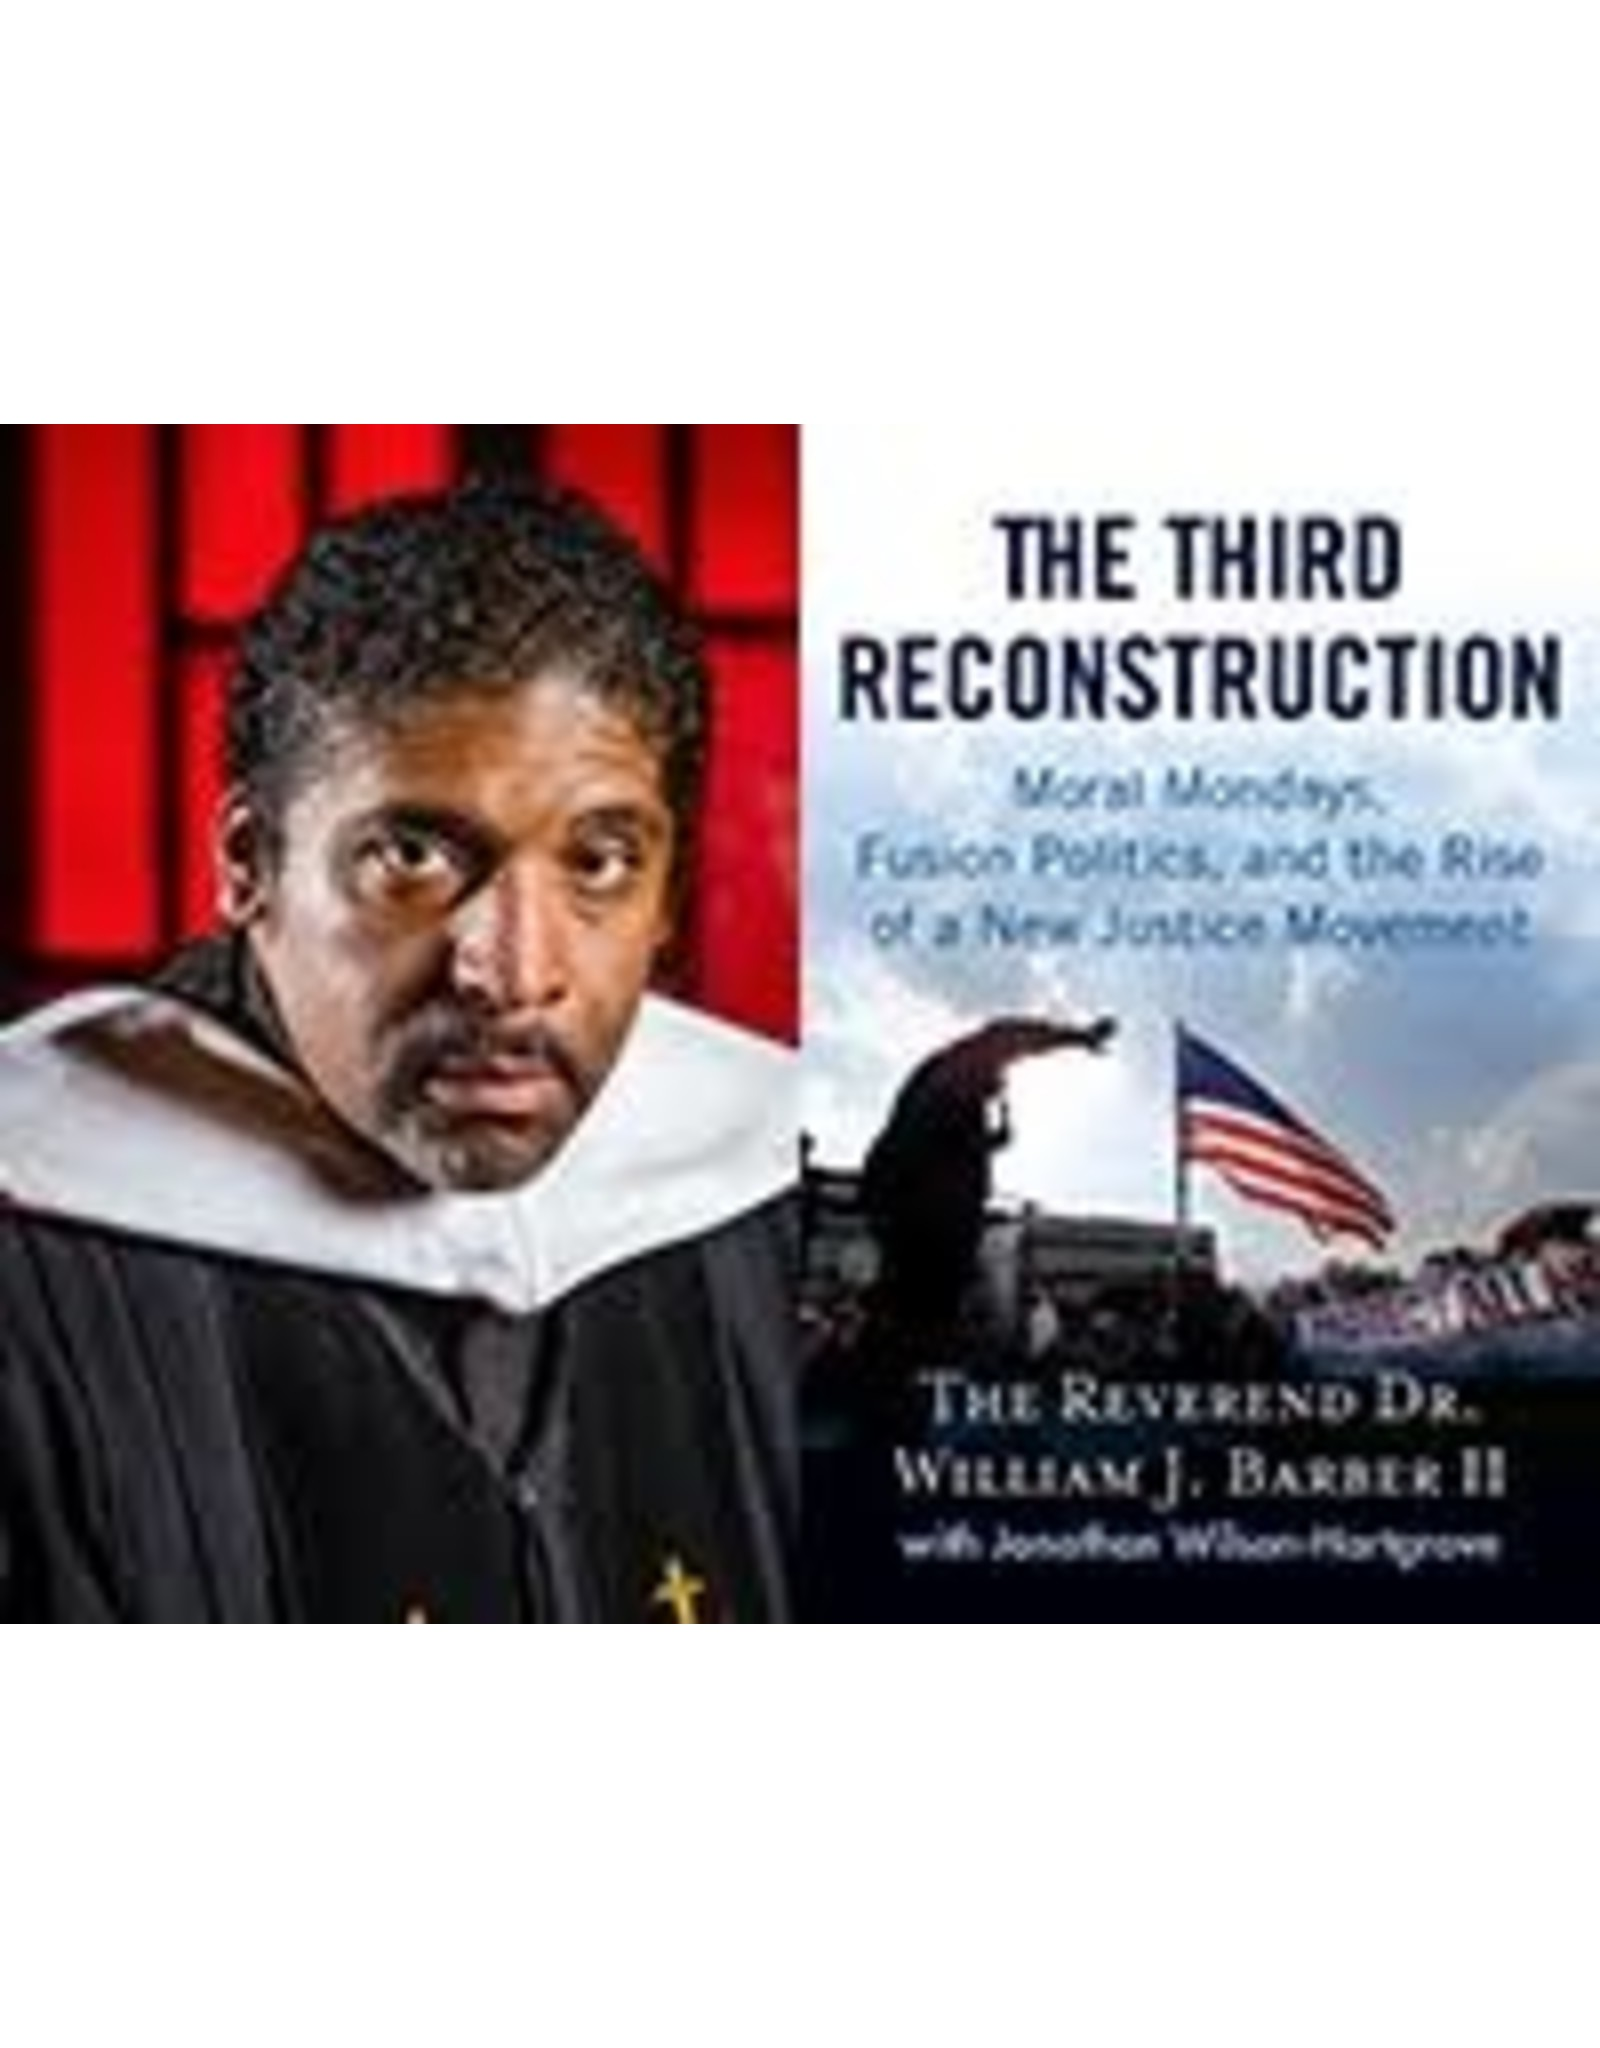 Books The Third Reconstruction by The Reverend Dr. William J. Barber II